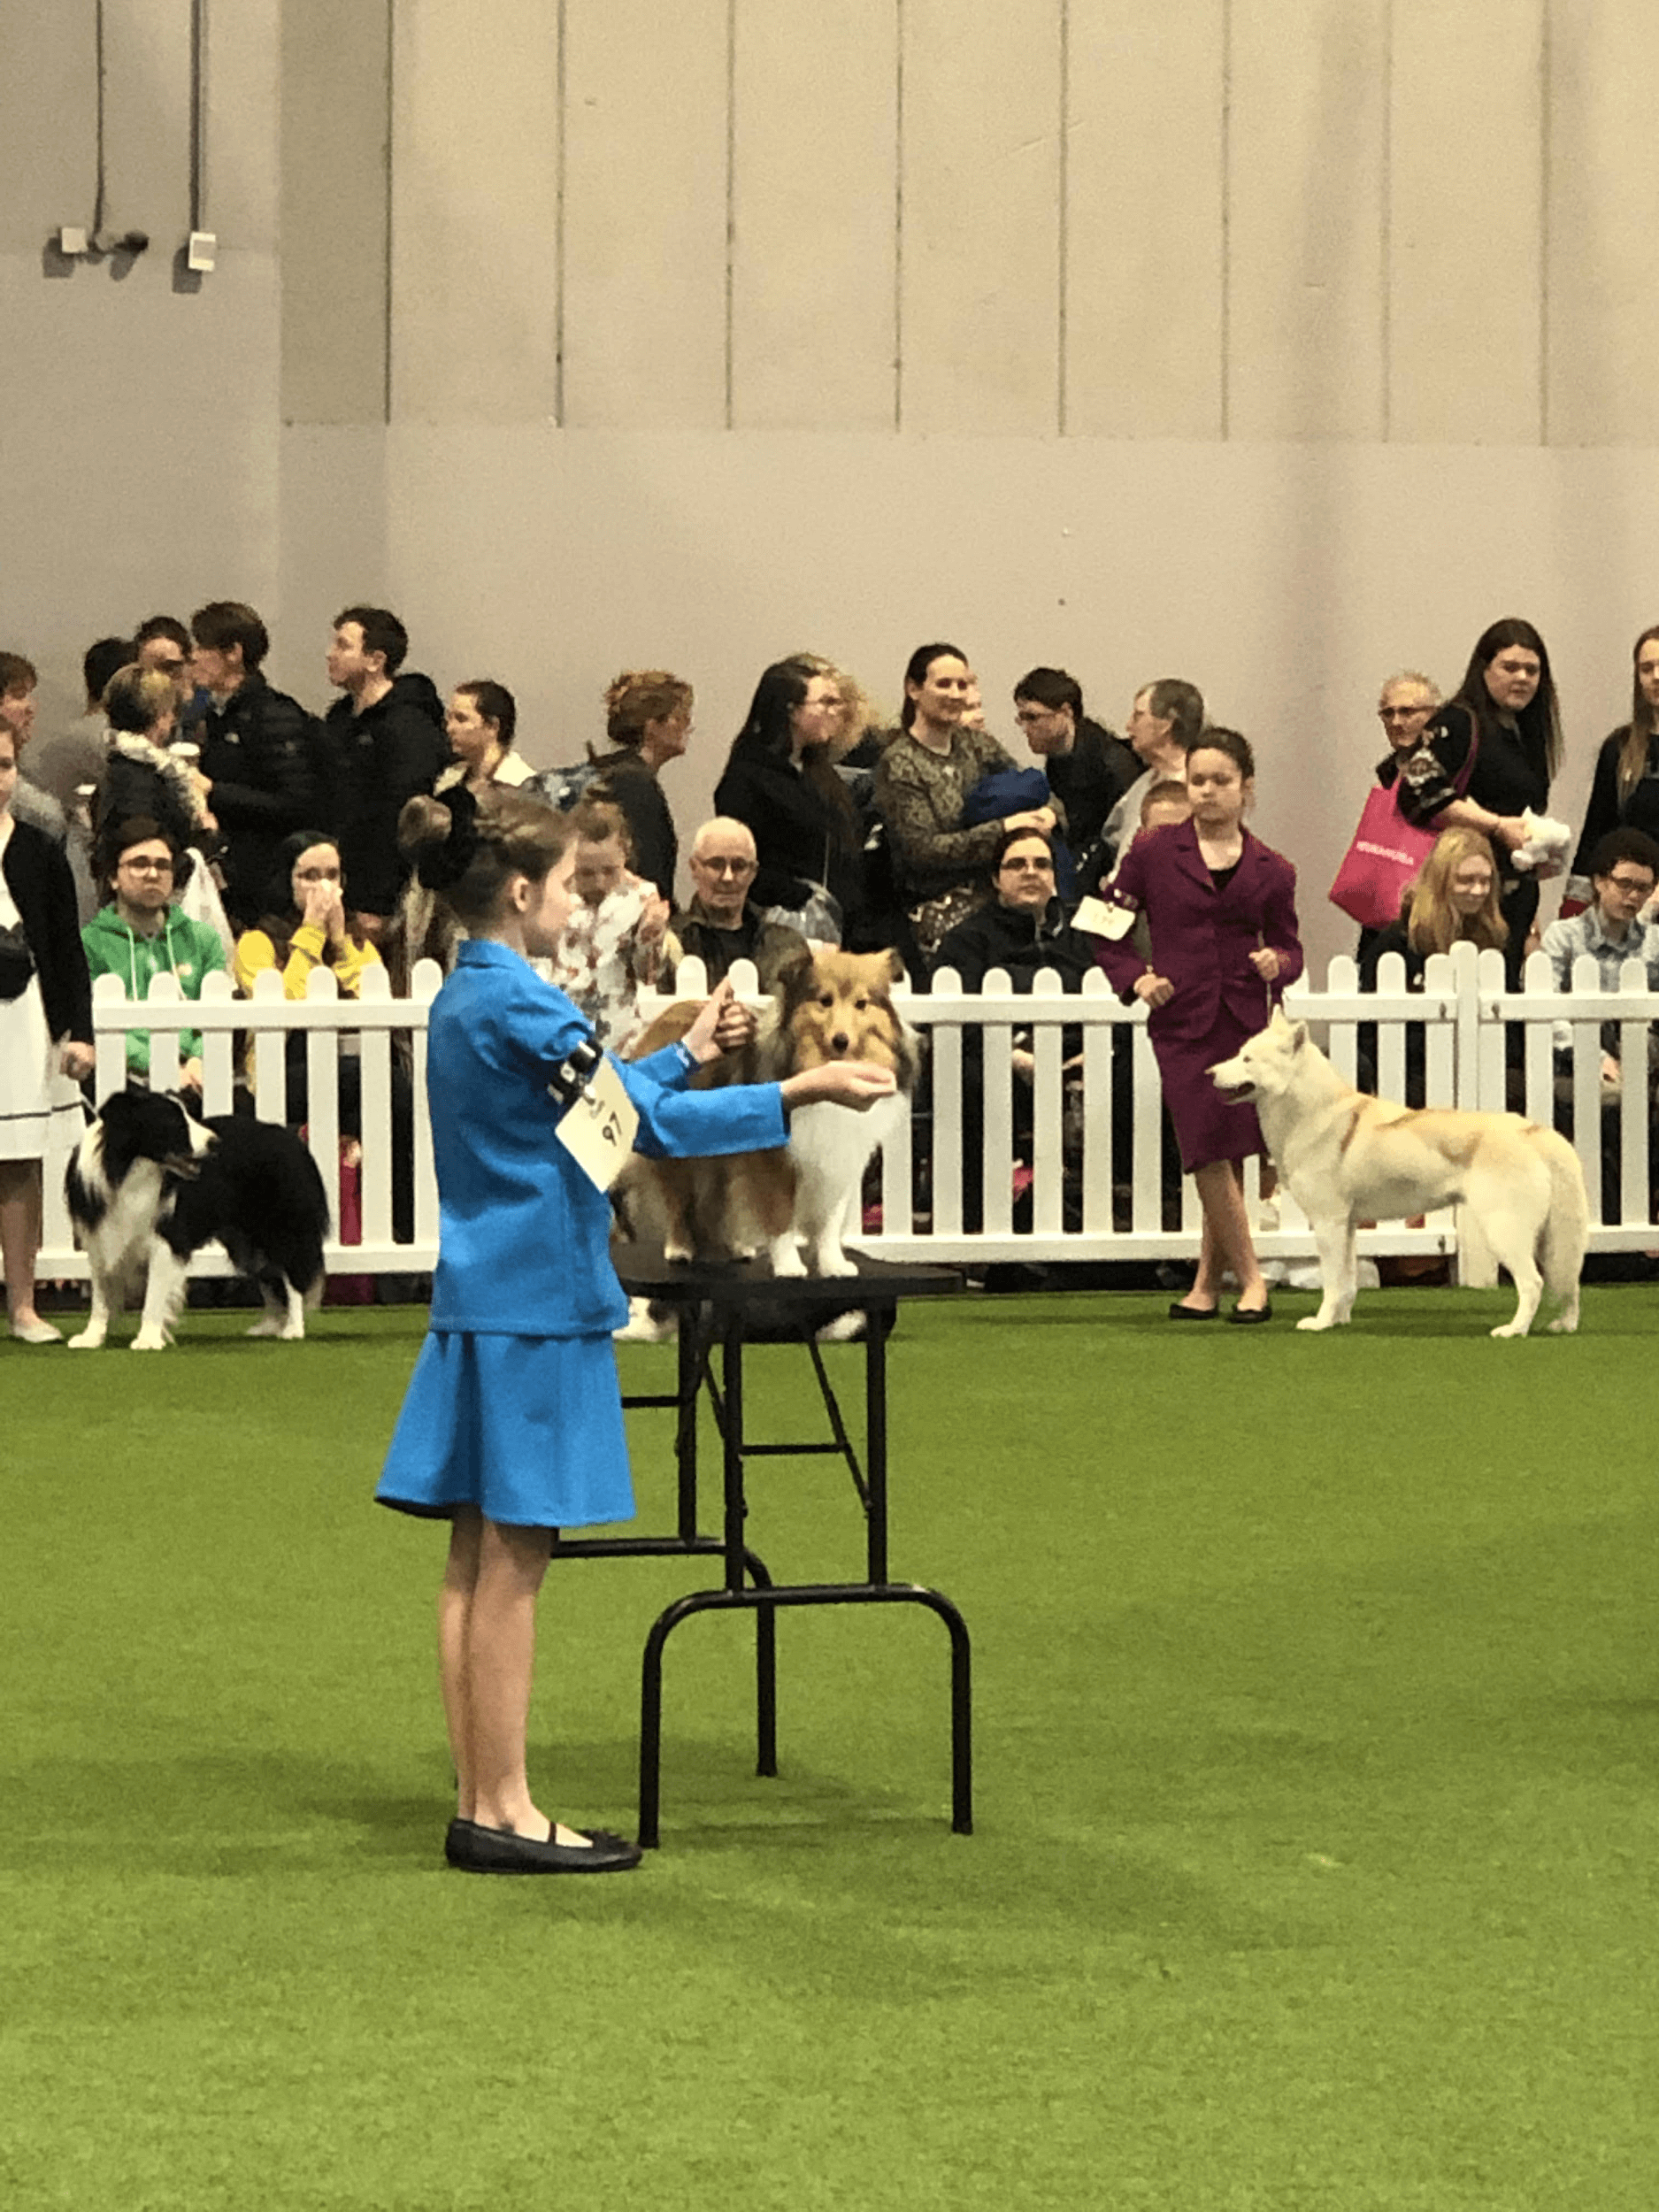 a young handler with a dog preparing for the competition